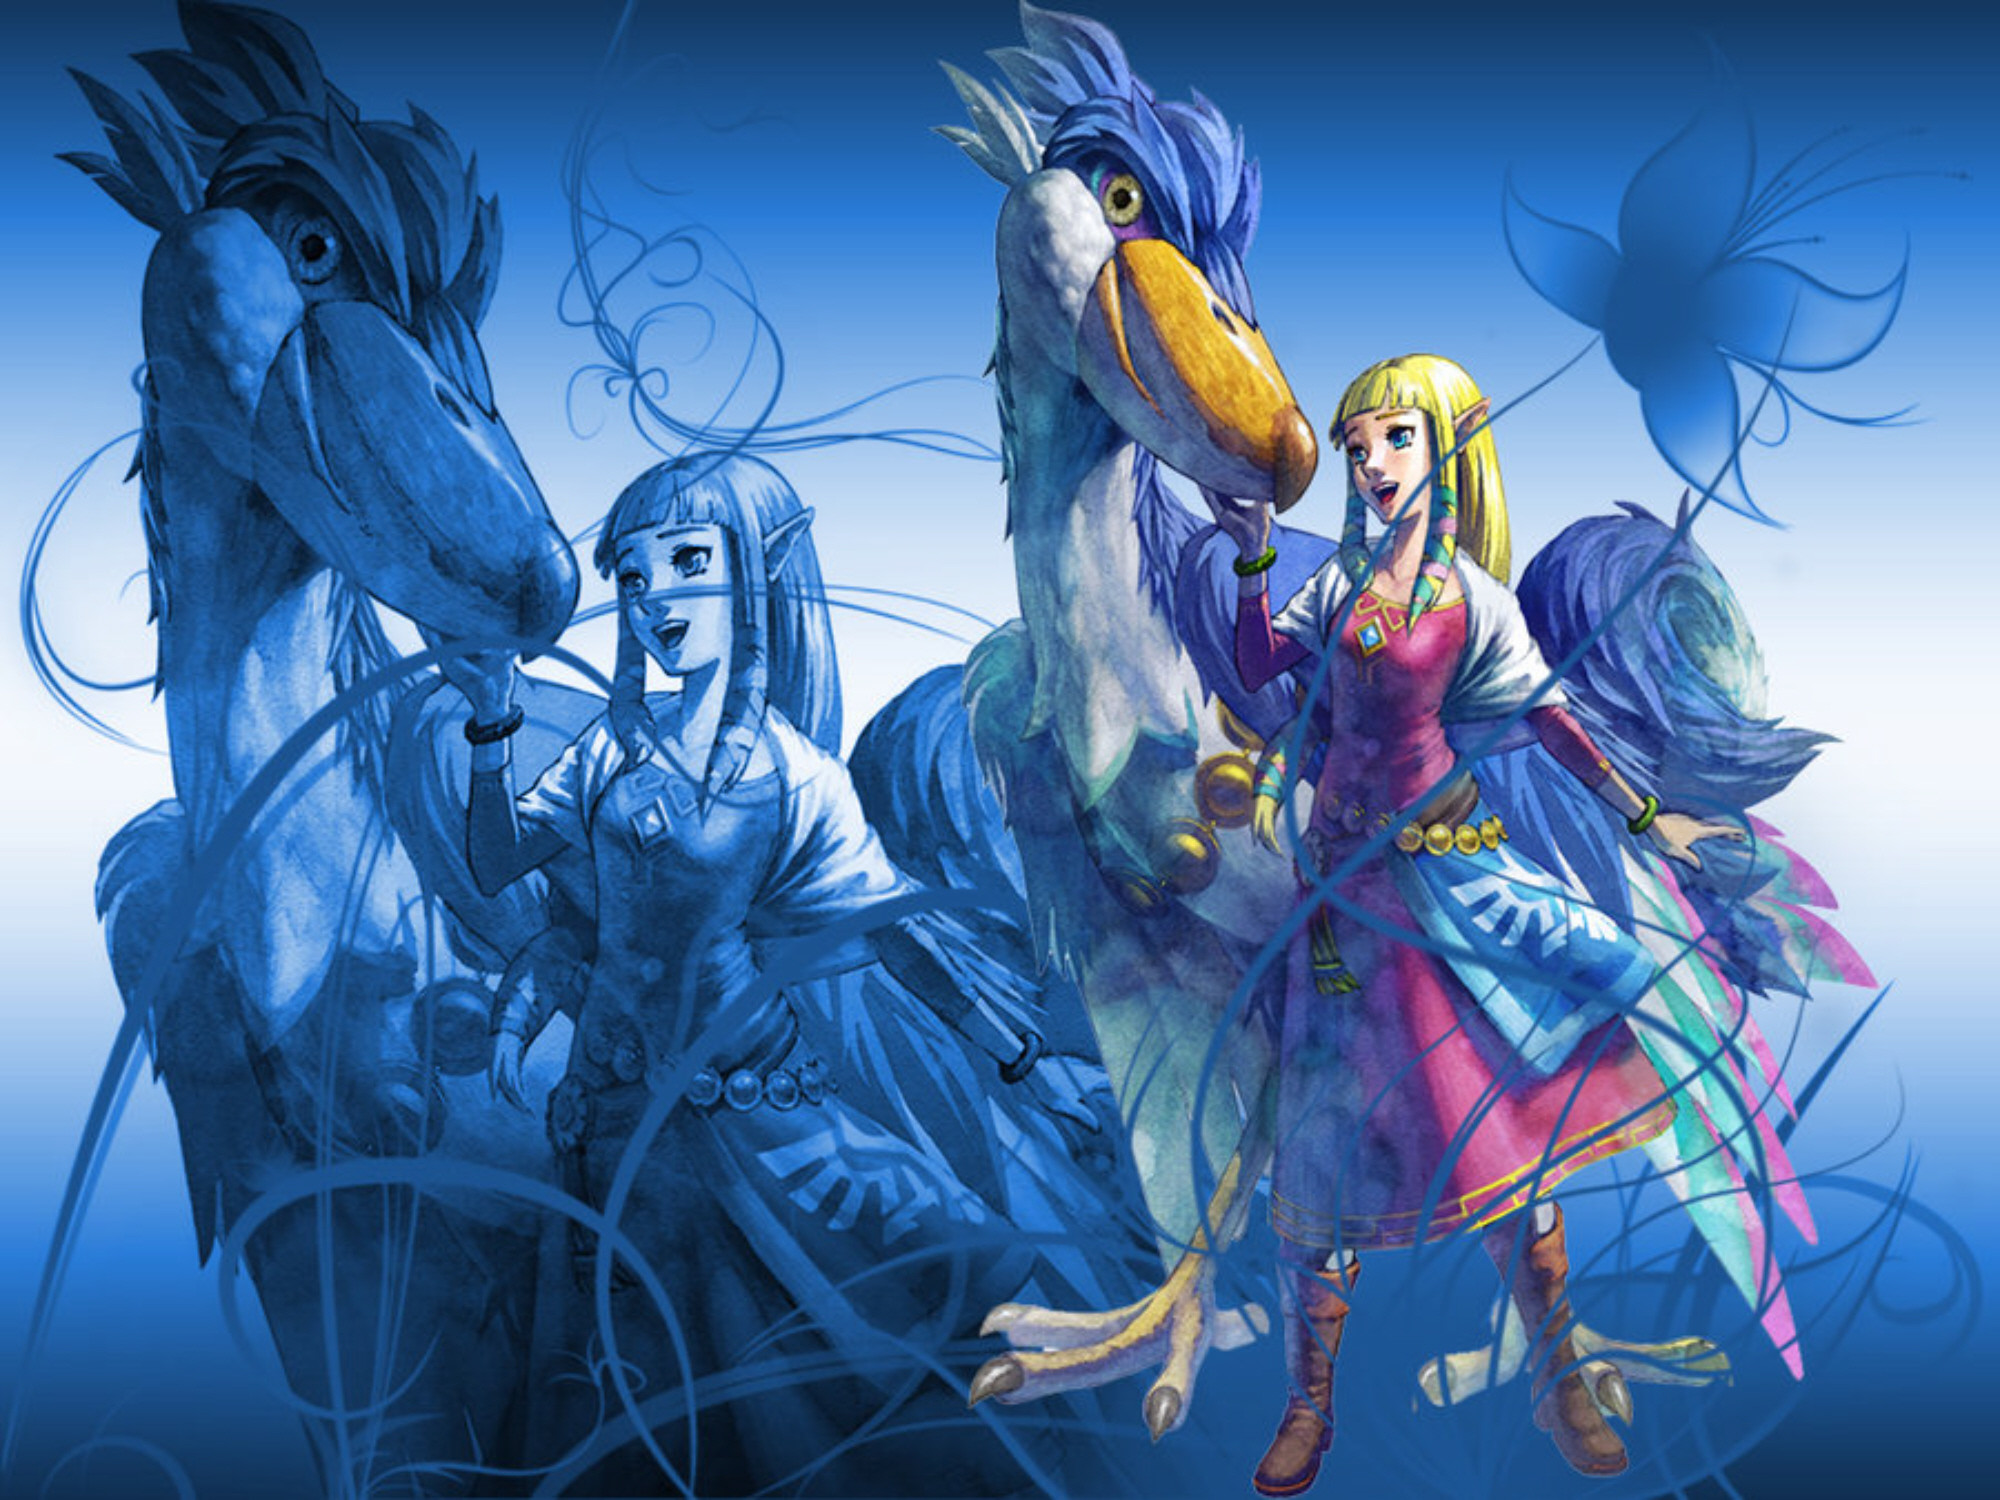 2000x1500 zelda skyward sword wallpaper fond ecran princesse zeldajpg